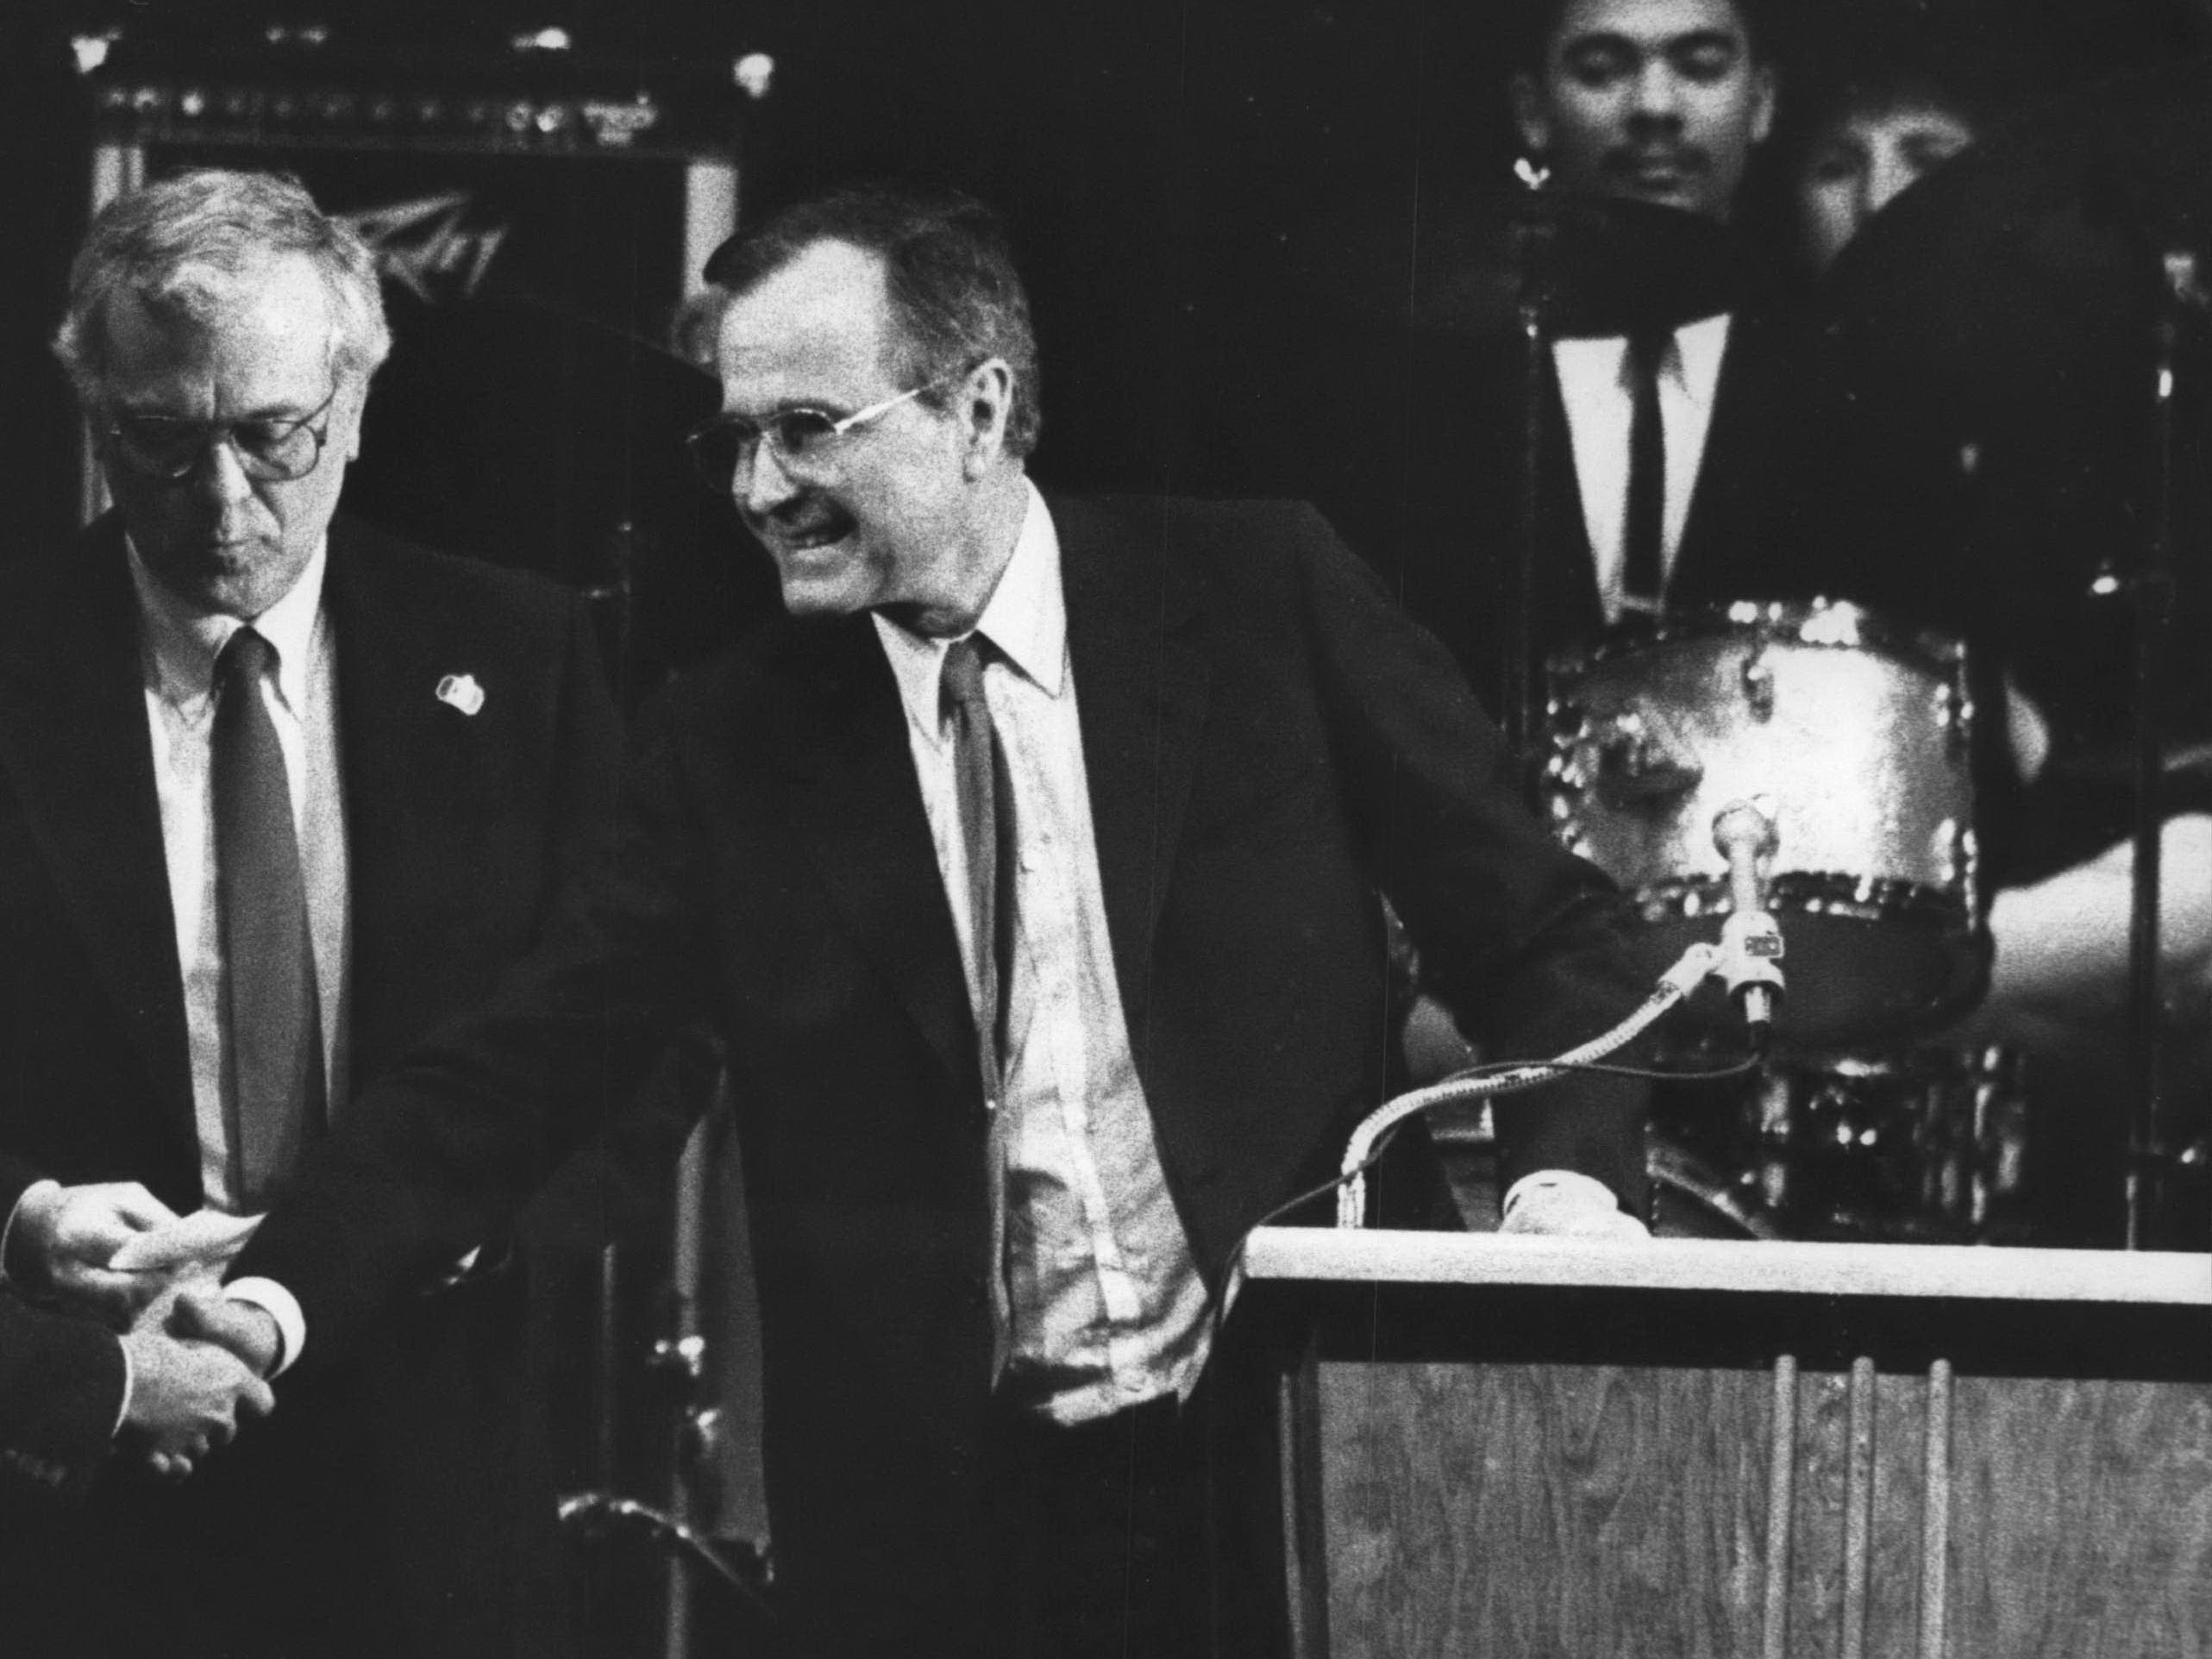 In 1988 George Bush visits at Marquette University High School in Milwaukee.